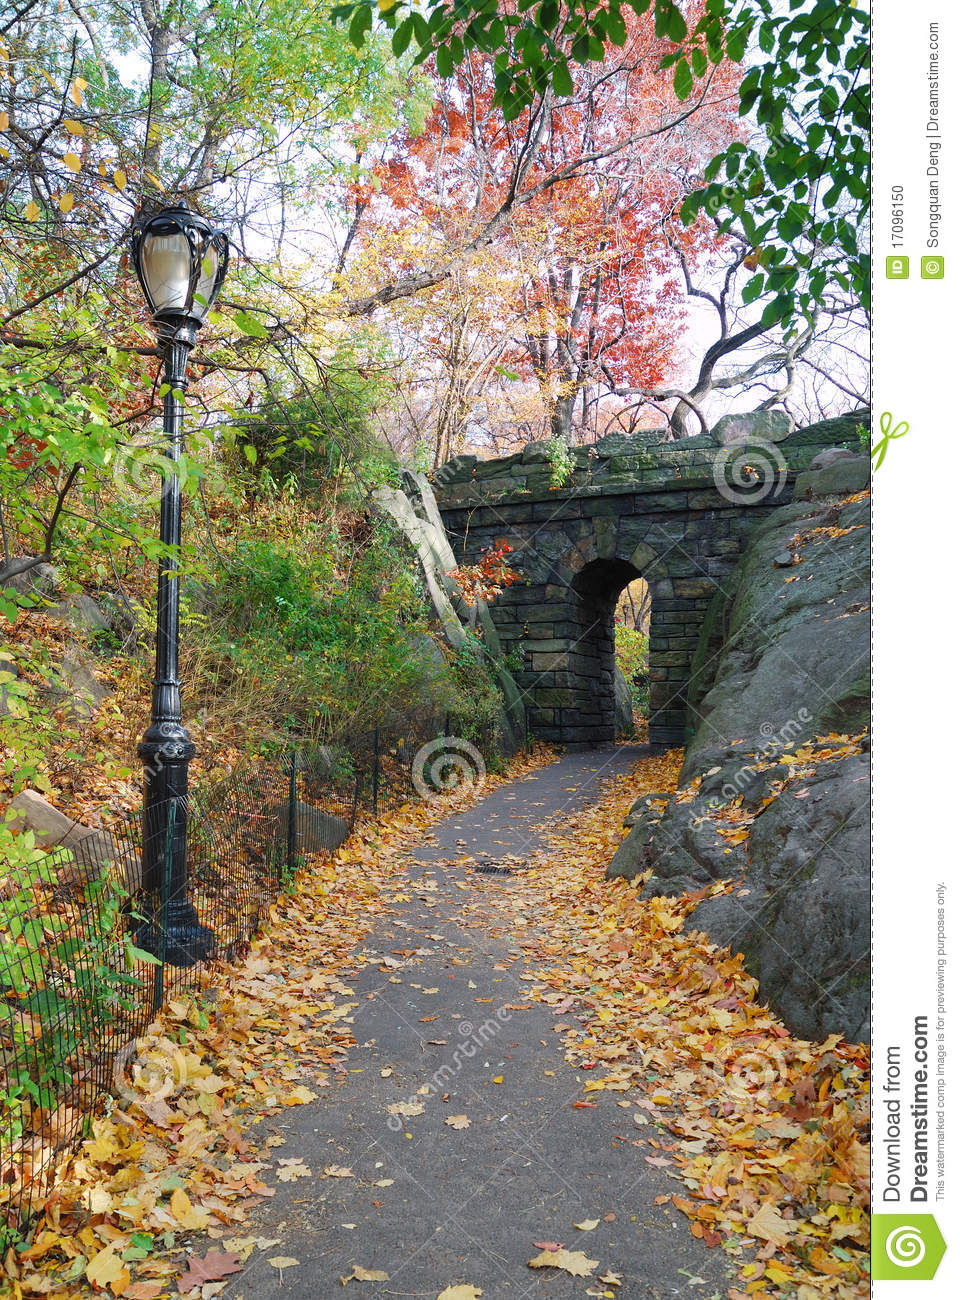 Avant Garden Freenyc Graphic Design Defined By: New York City Central Park Stone Bridge Stock Photo